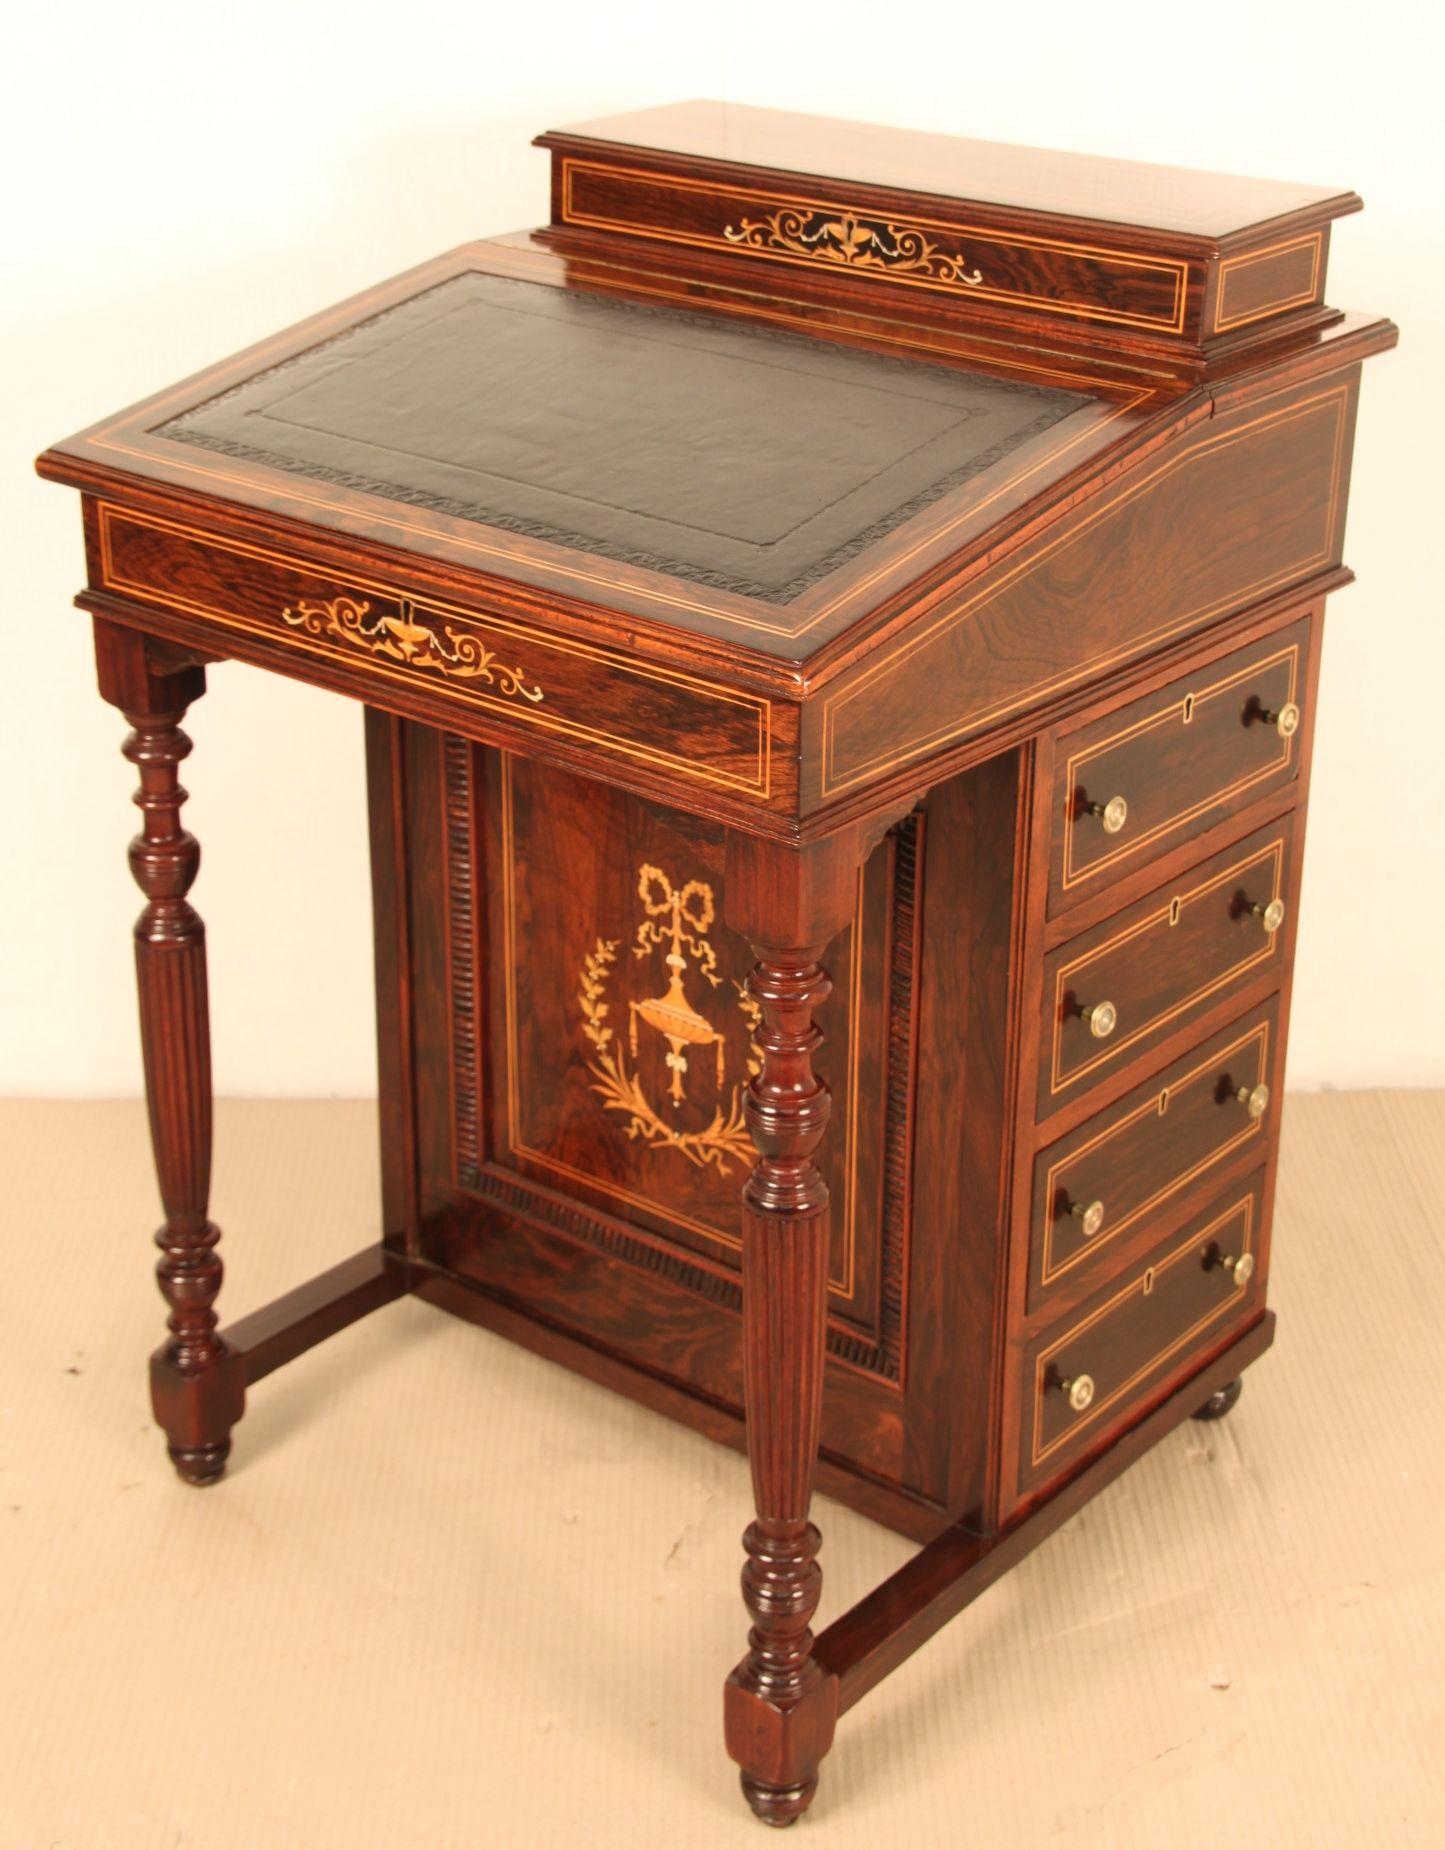 https://www.loveantiques.com/antique-desks/davenport- - Https://www.loveantiques.com/antique-desks/davenport-desks/inlaid